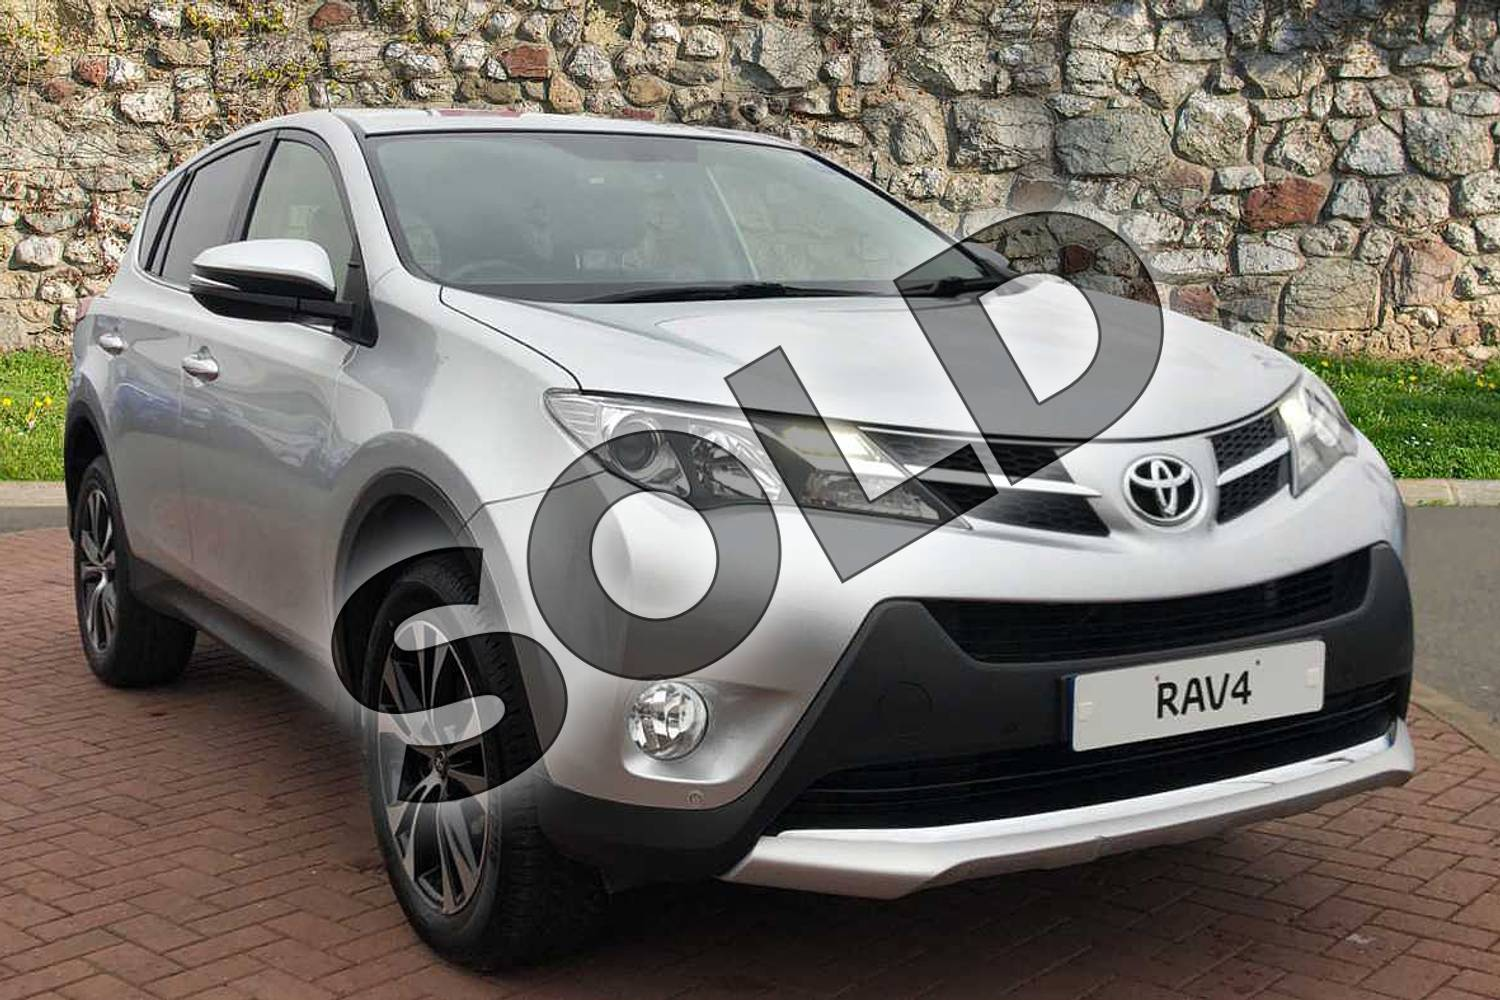 2015 Toyota RAV4 Estate 2.0 V-Matic Invincible 5dr M-Drive S in Silver at Listers Toyota Nuneaton